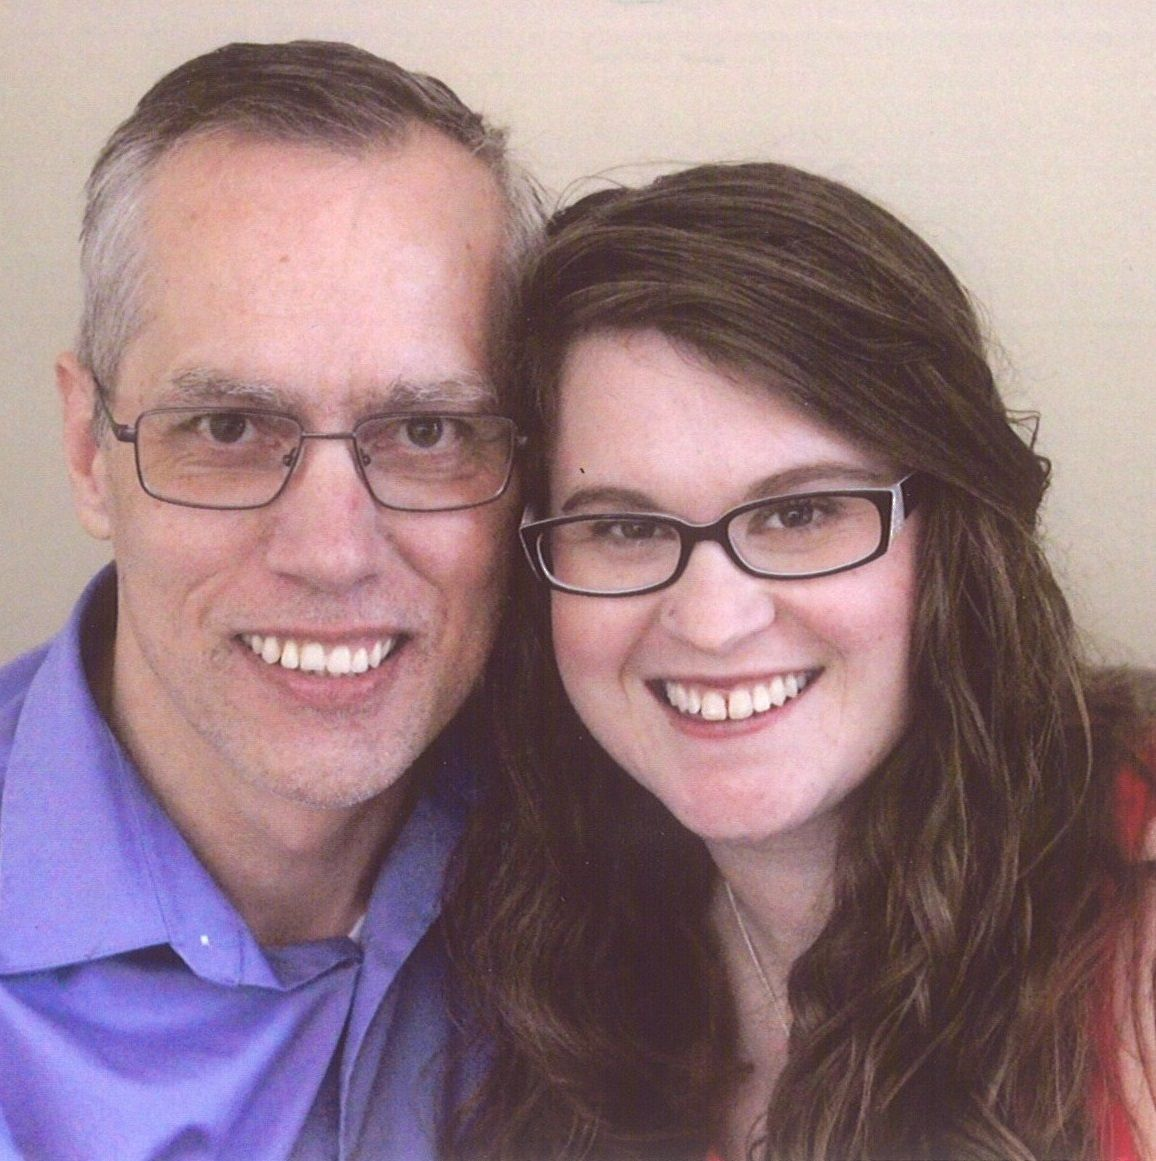 Kenneth Klynsma and Kimberly Raaphorst